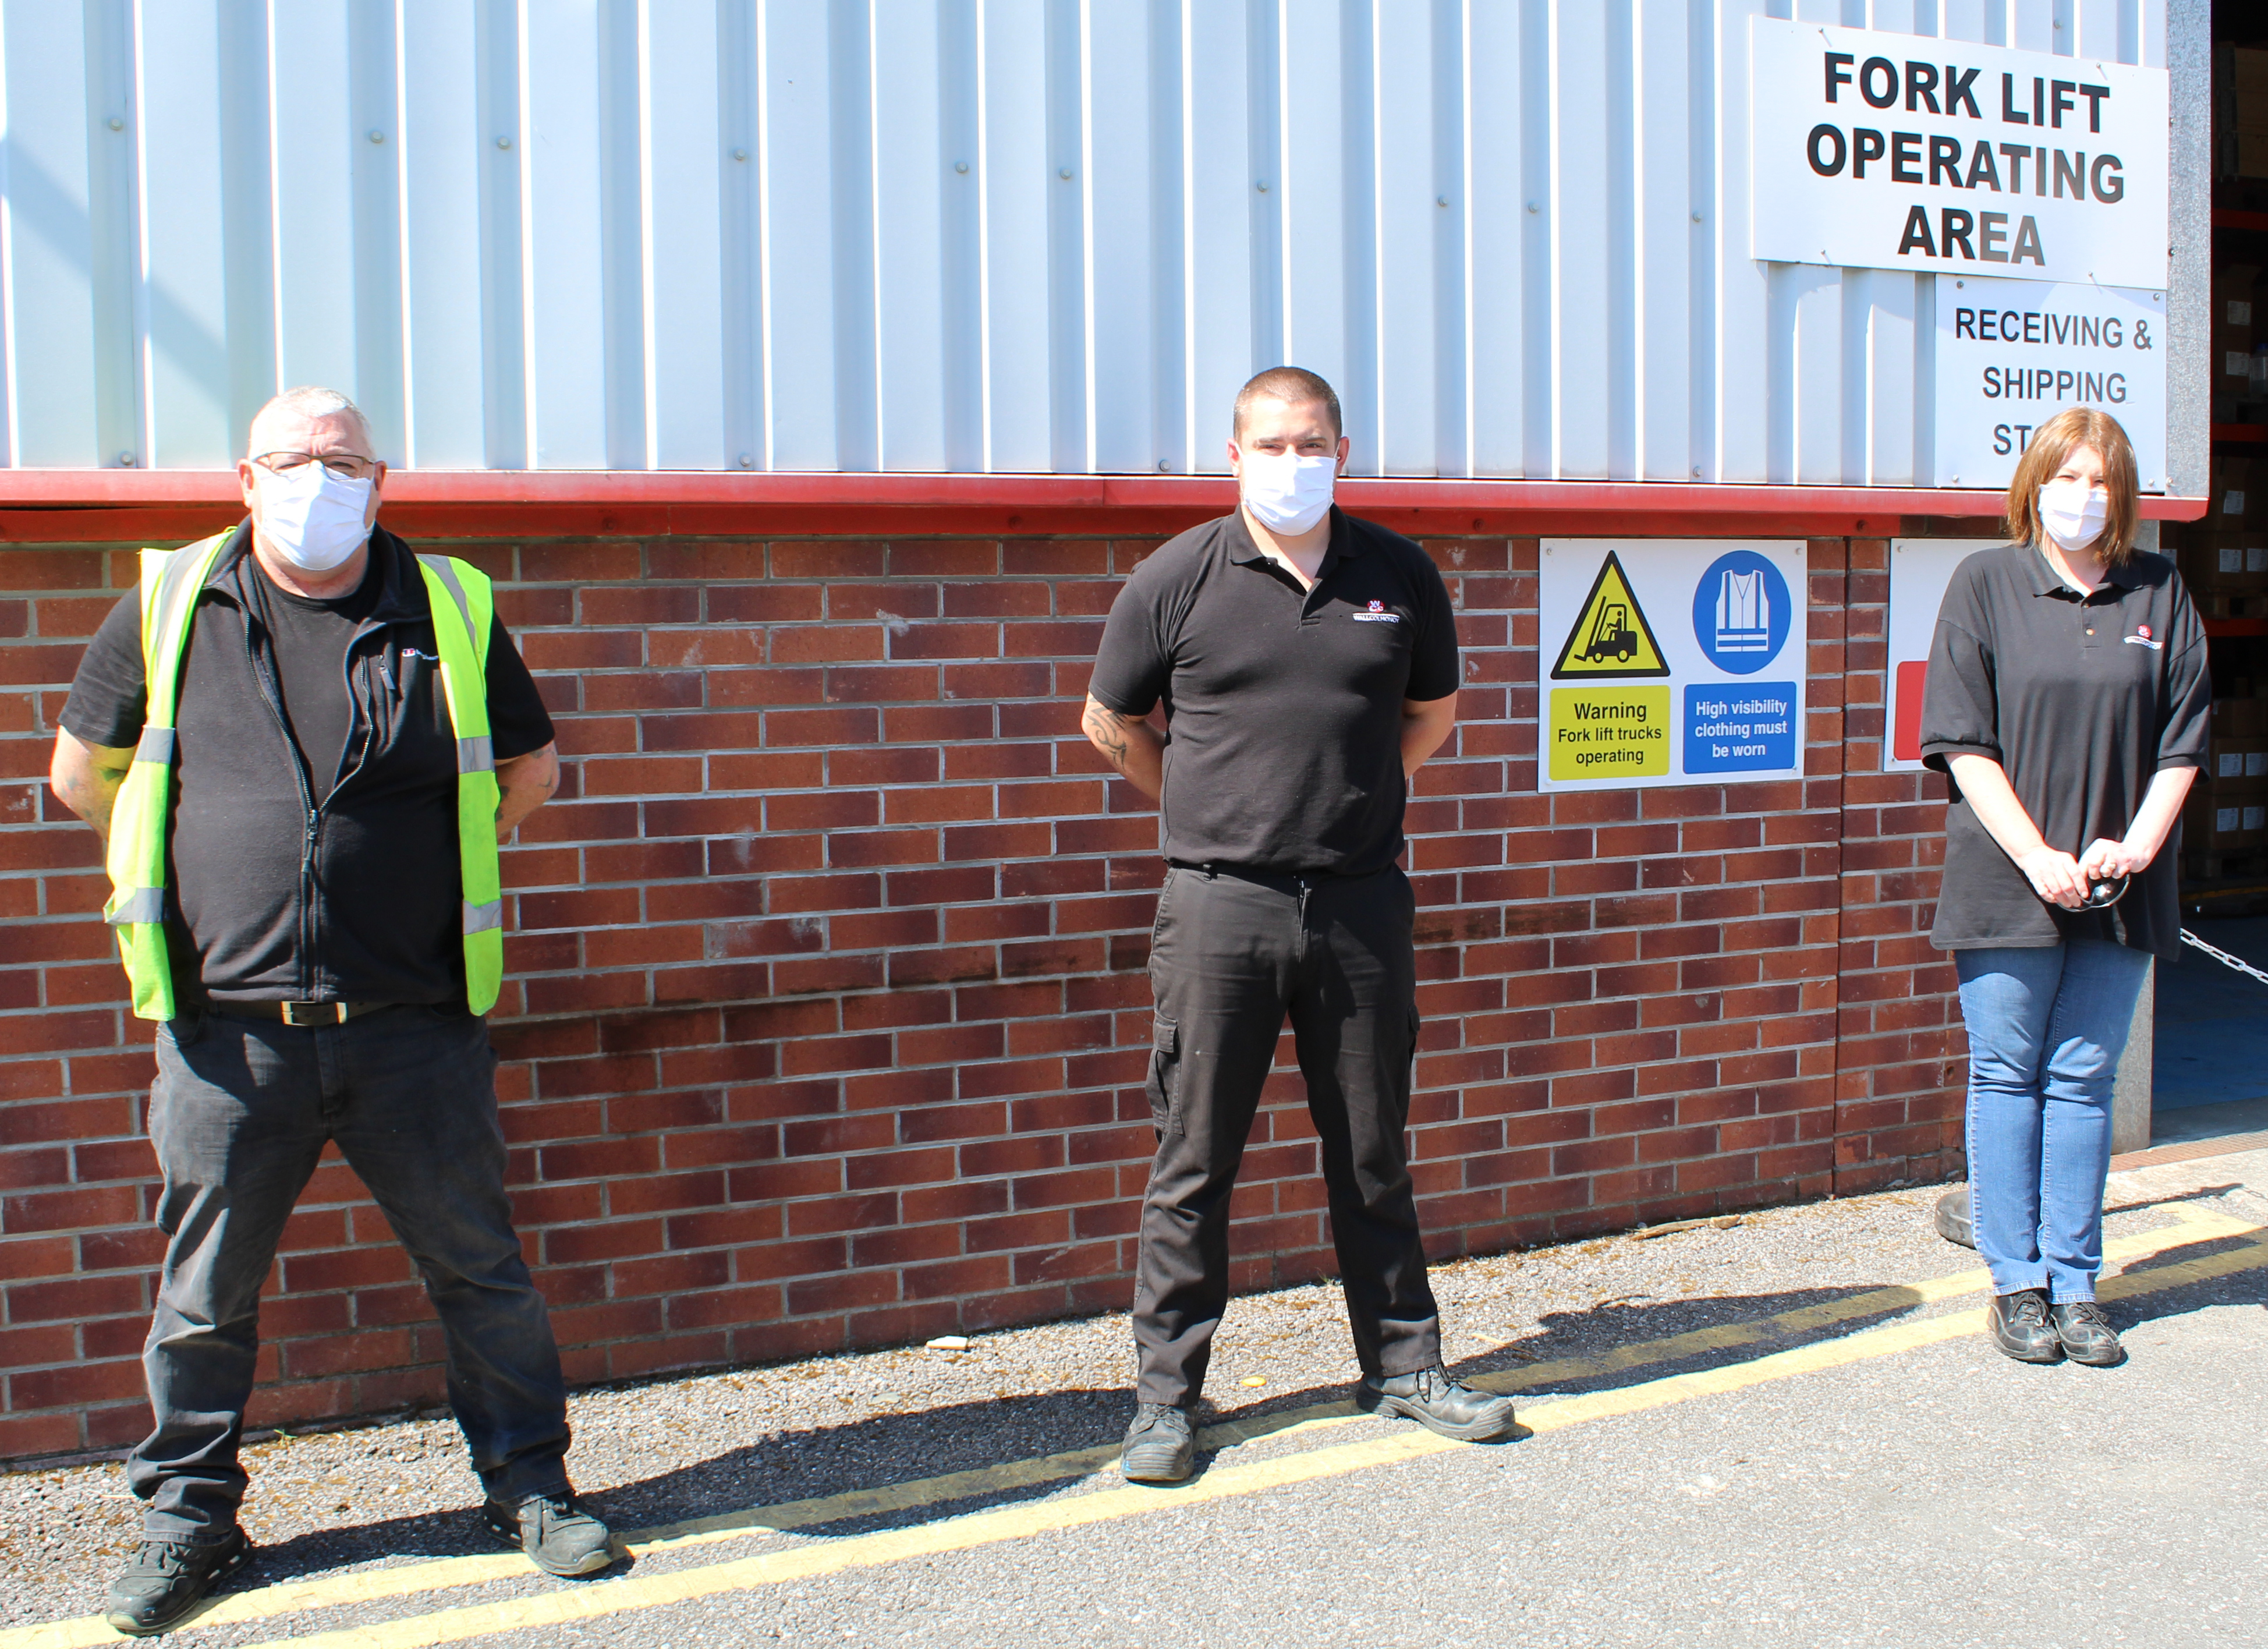 Mark Young, Craig Neilson and Alison Smith from the Shipping department.